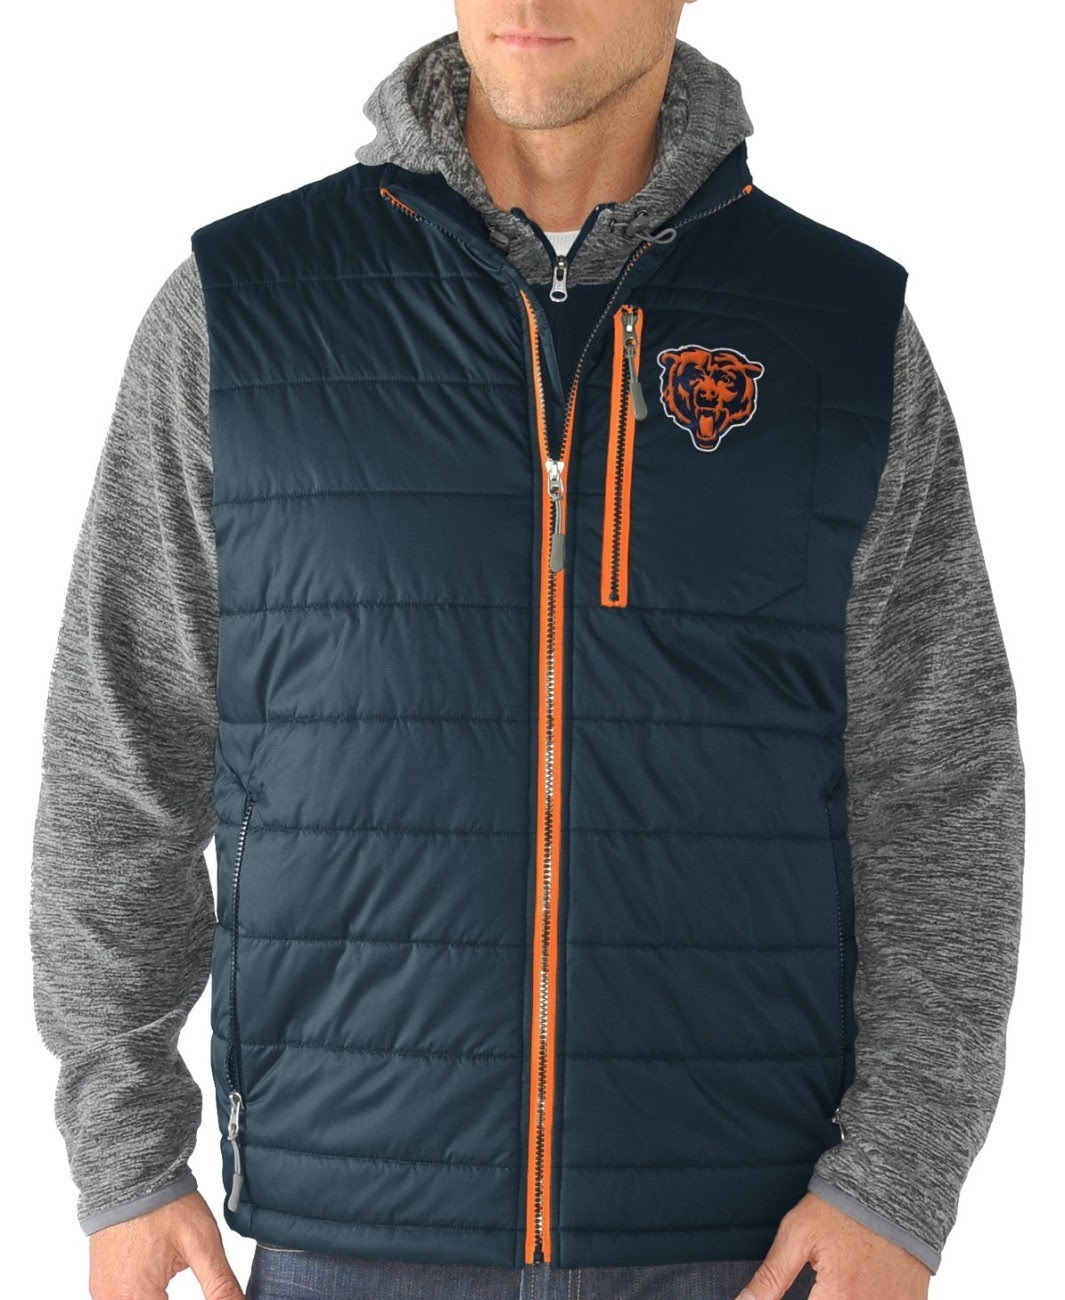 Chicago Bears GIII NFL quot;Double Trackquot; Systems 3in1 Premium Vest Jacket  eBay